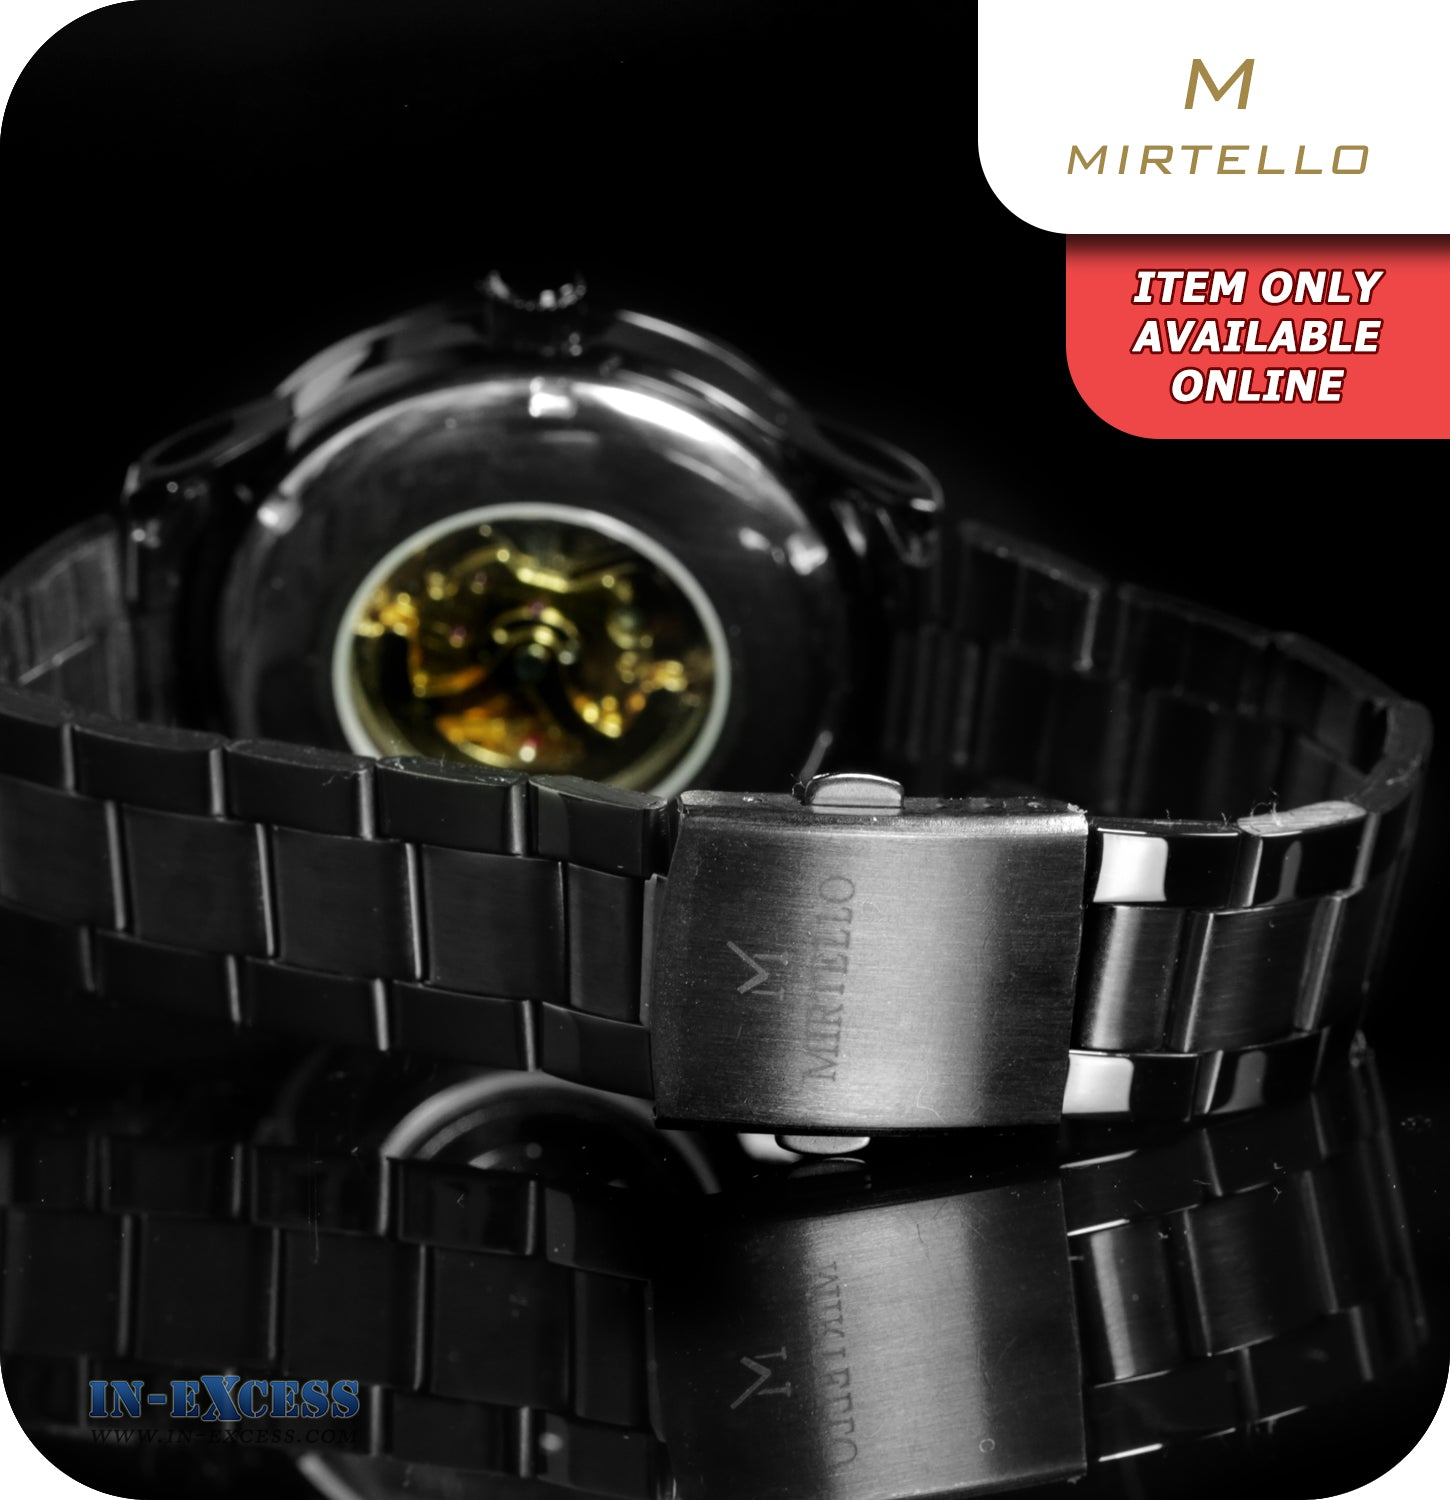 9eed3ccacd19 Mirtello Night Skeleton Mechanical Wrist Watch With Link Strap - Carbon  Black & Gold